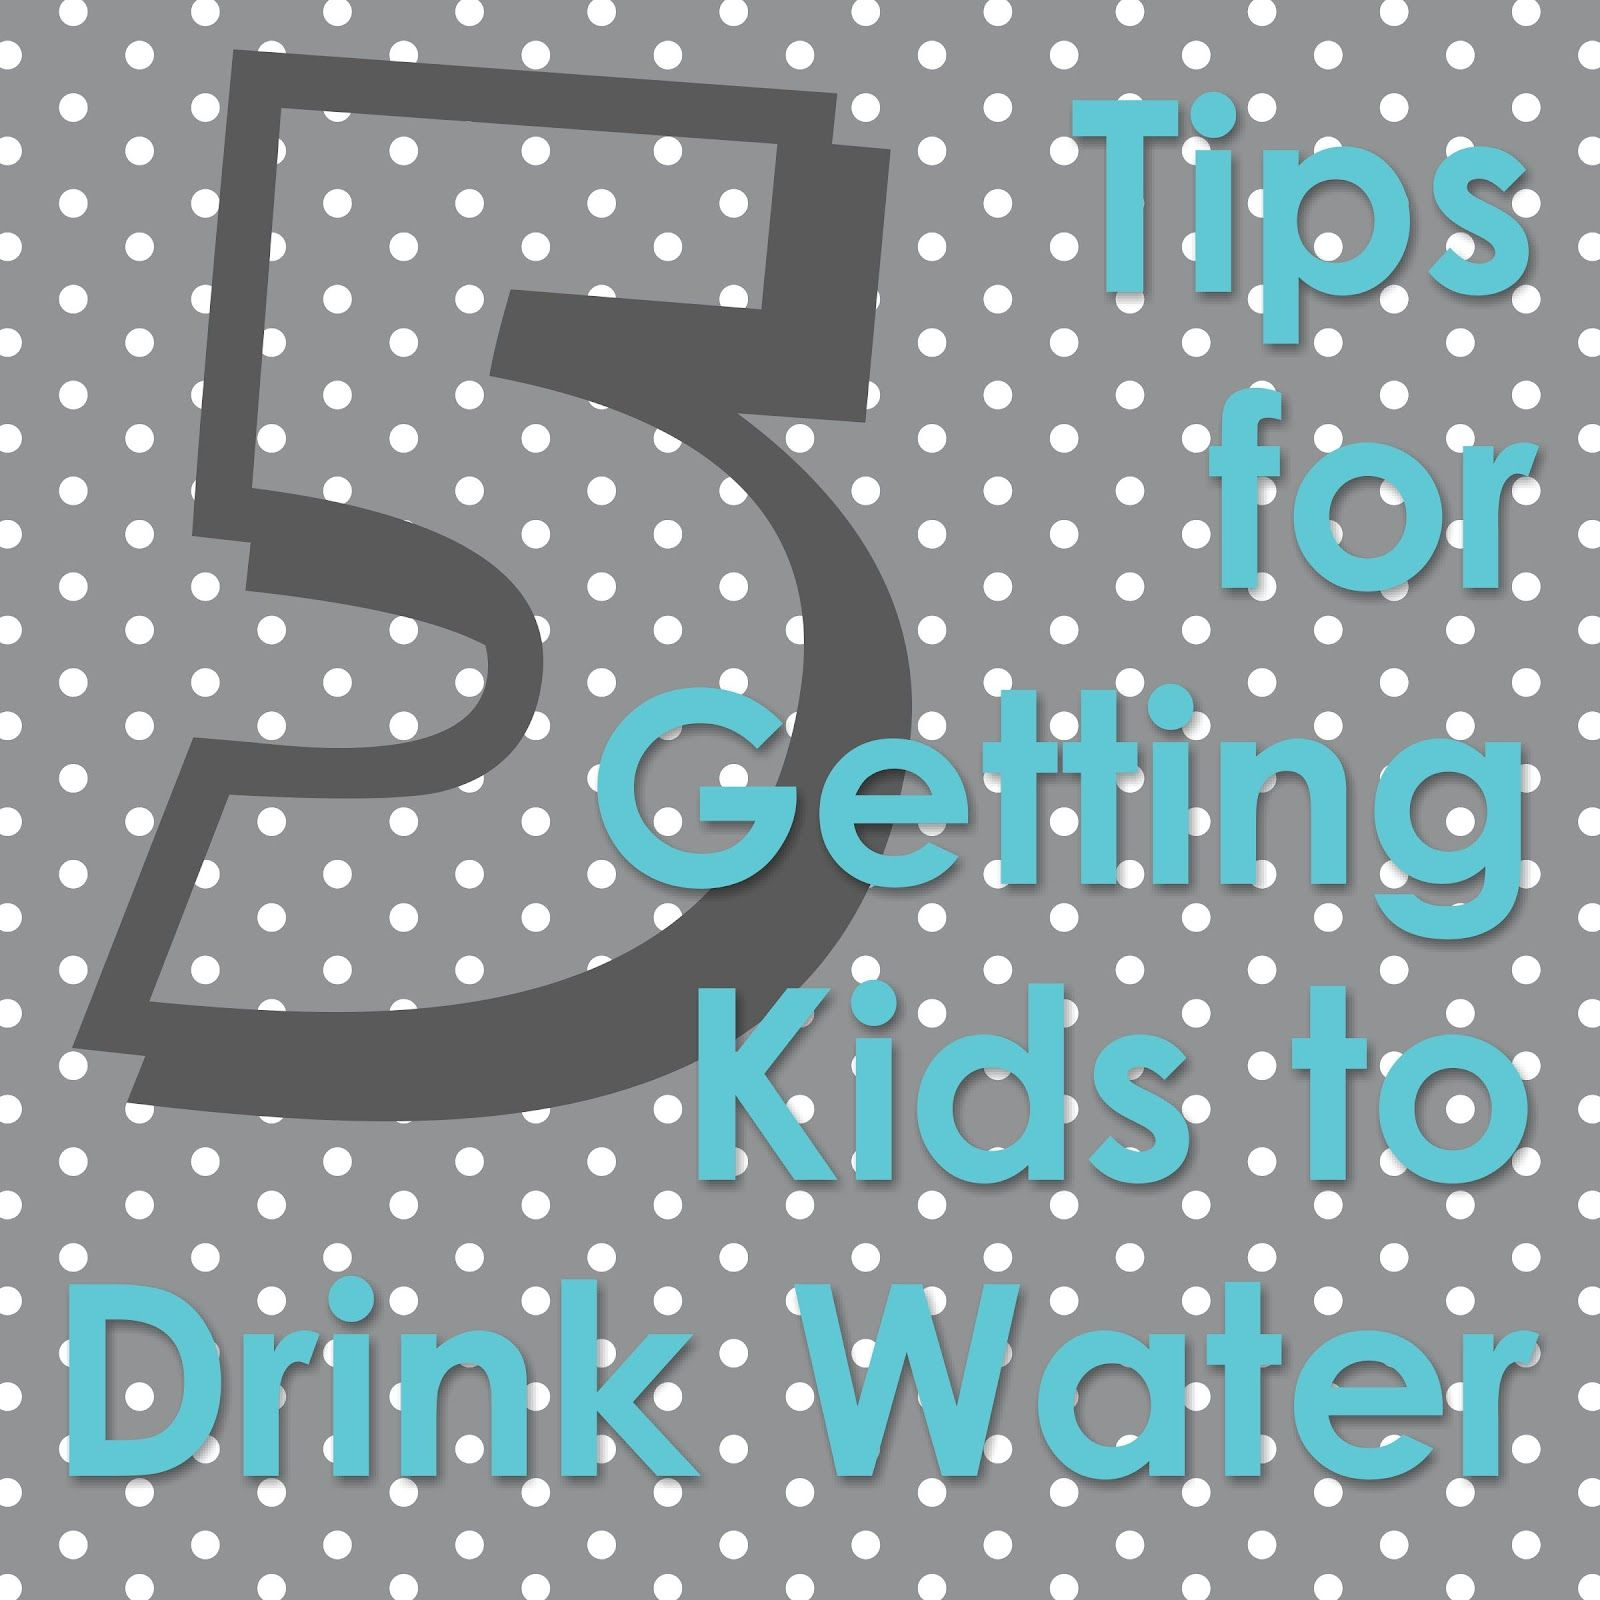 5 Tips for Getting Kids to Drink Water over sugary drinks